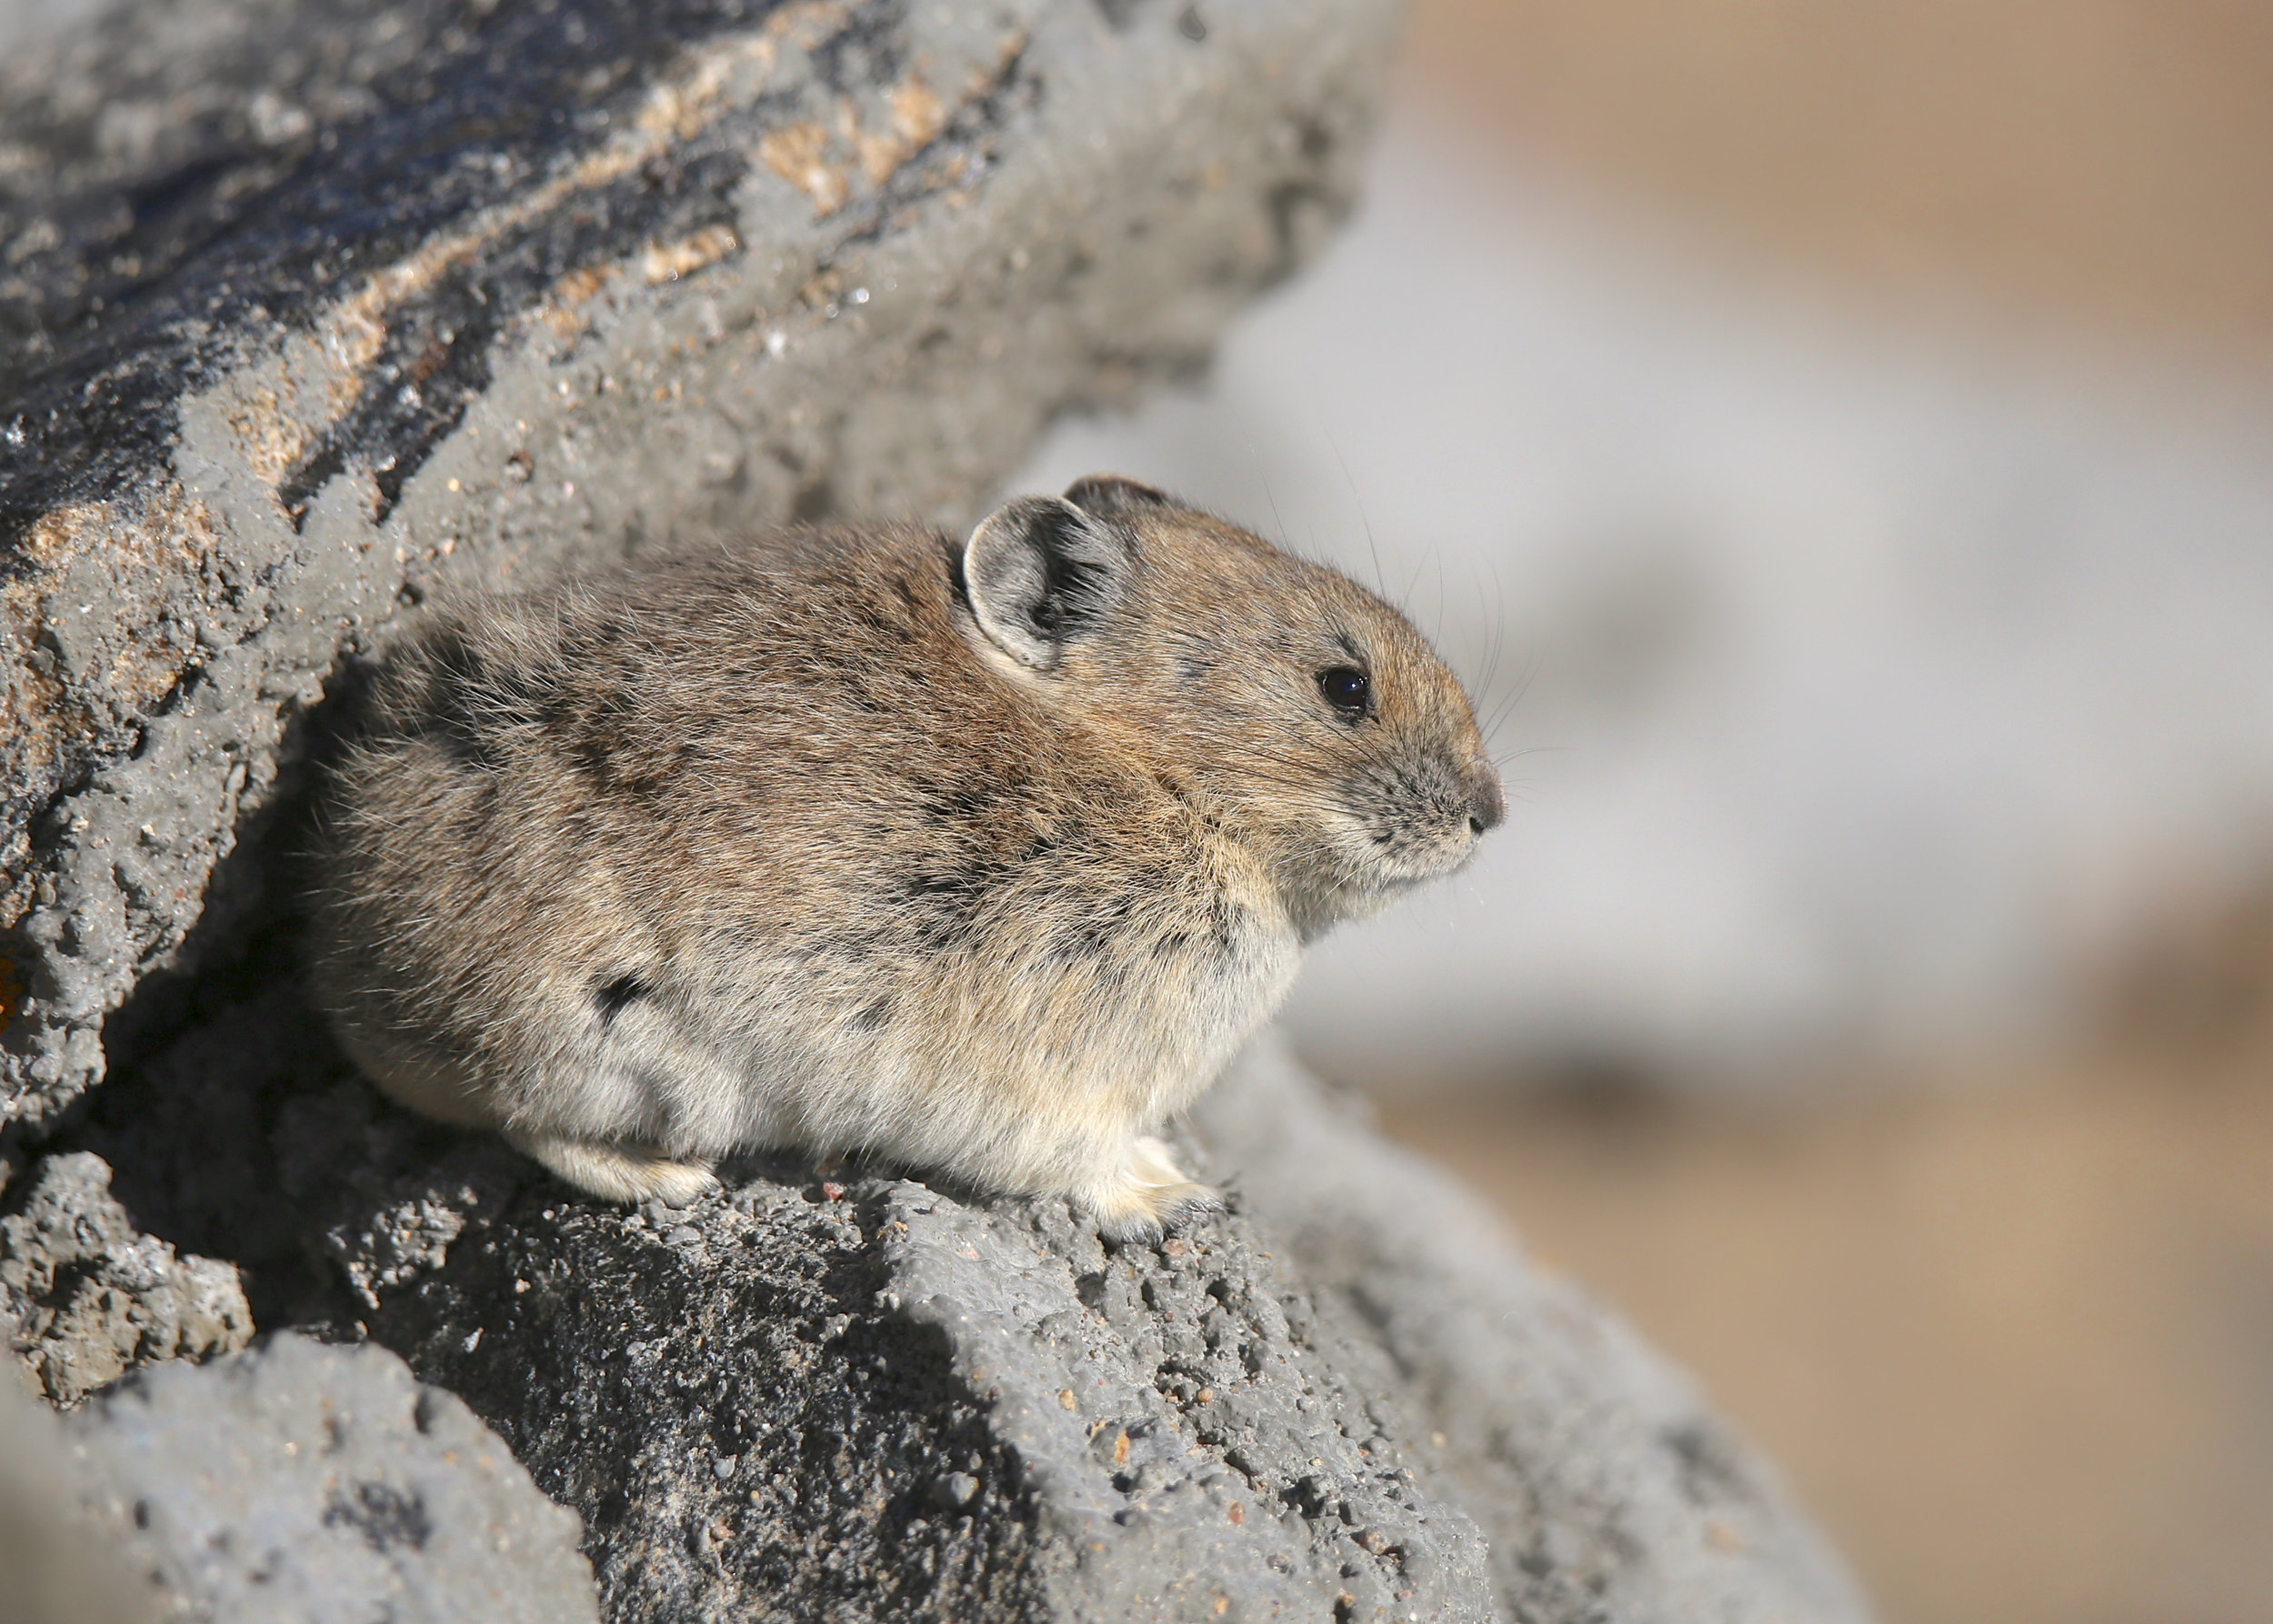 "Who's that calling out ""me, me, me""? - It's a pika, also known as a rock rabbit. Pikas live in colonies on rocky slopes in the forest and are very territorial. They make their signature ""me, me, me"" sound to tell other pikas where the boundaries are between their dens. Though they don't look like it, pikas are related to rabbits and hares. Their short ears, tiny size, and dense coats make them look more like fuzzy balls than bunnies. The pika has one of the longest tails of all lagomorphs, but it's hidden in the thick fur, so it looks like it doesn't have a tail at all.The pika spends a great deal of time gathering flowers and grasses for winter. Pika don't hibernate. Instead, they spend the warm months gathering vegetation to sustain them through the long, harsh winters. They spread their collected vegetation on the rocks to cure in the sun, then stack it into hay piles and store it under the rocks. One study discovered their 'haystacks' of gathered goodies can weigh up to 61 pounds! These stashes may easily cover an area of 100 square meters and can reach up to two feet high. A typical pika hay pile would fill a bathtub, and easily contains 30 different types of plants. Biologists have learned that during just a 10-week time period, one pika will make 14,000 foraging trips, as many as 25 per hour, to secure its food stash."